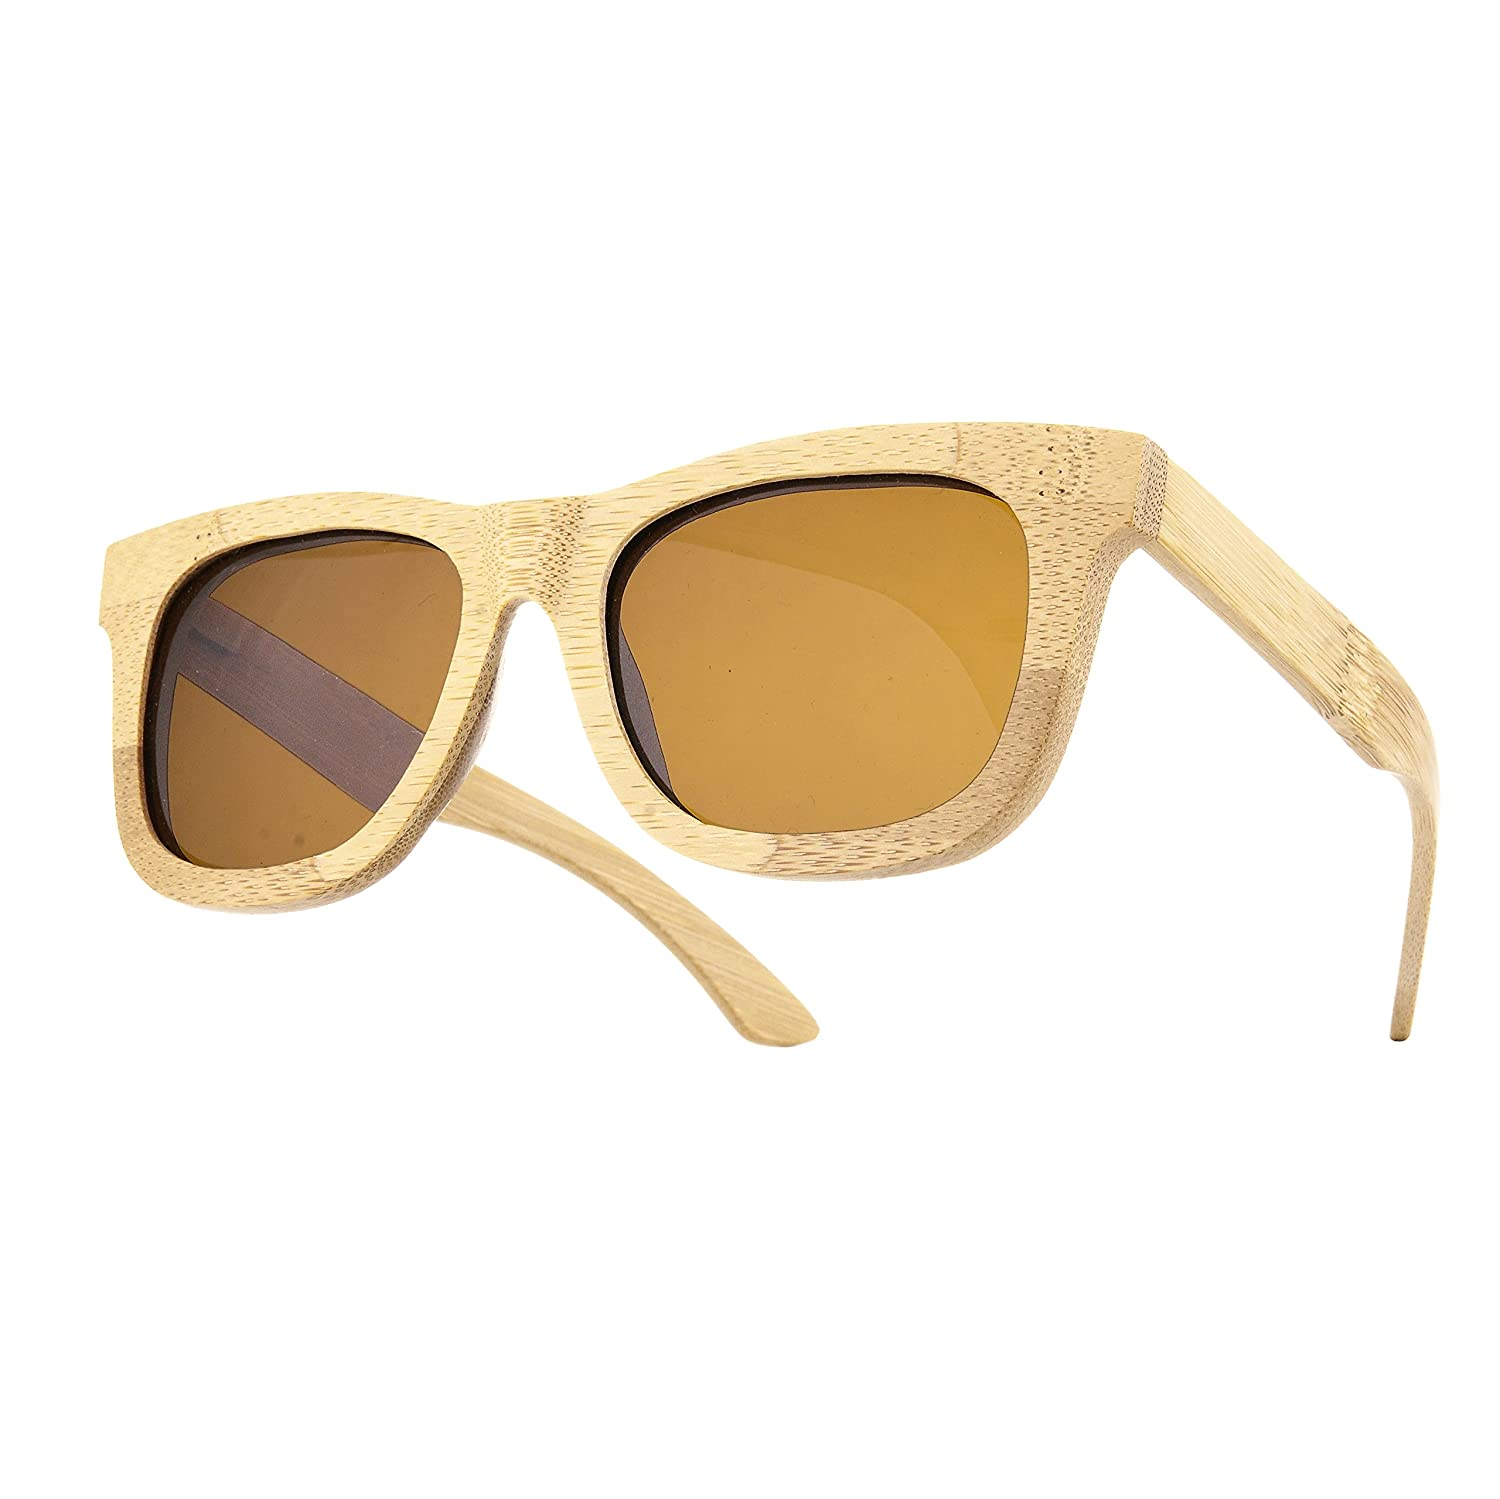 Bambusholz (Damen Heren) Retro Vinatge Holz Sonnenbrille Brille SUNGLASSES UV400 Protection (light Bambus)